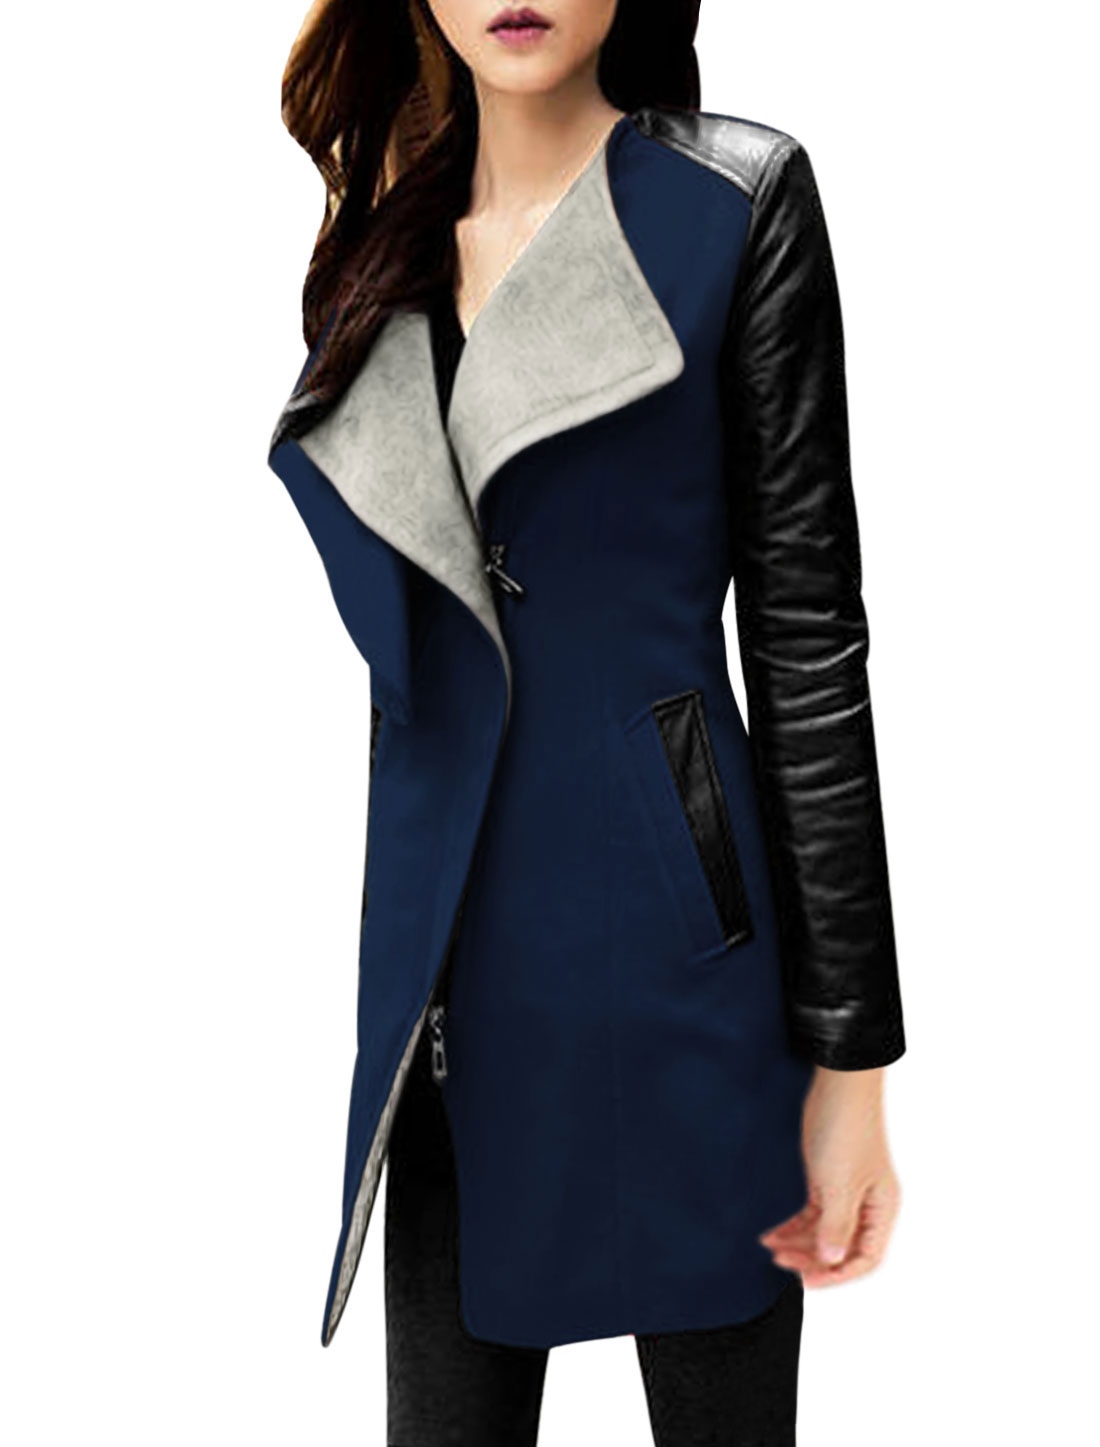 Cozy Fit Two Layer Collar Casual Worsted Coat for Lady Navy Blue Black S